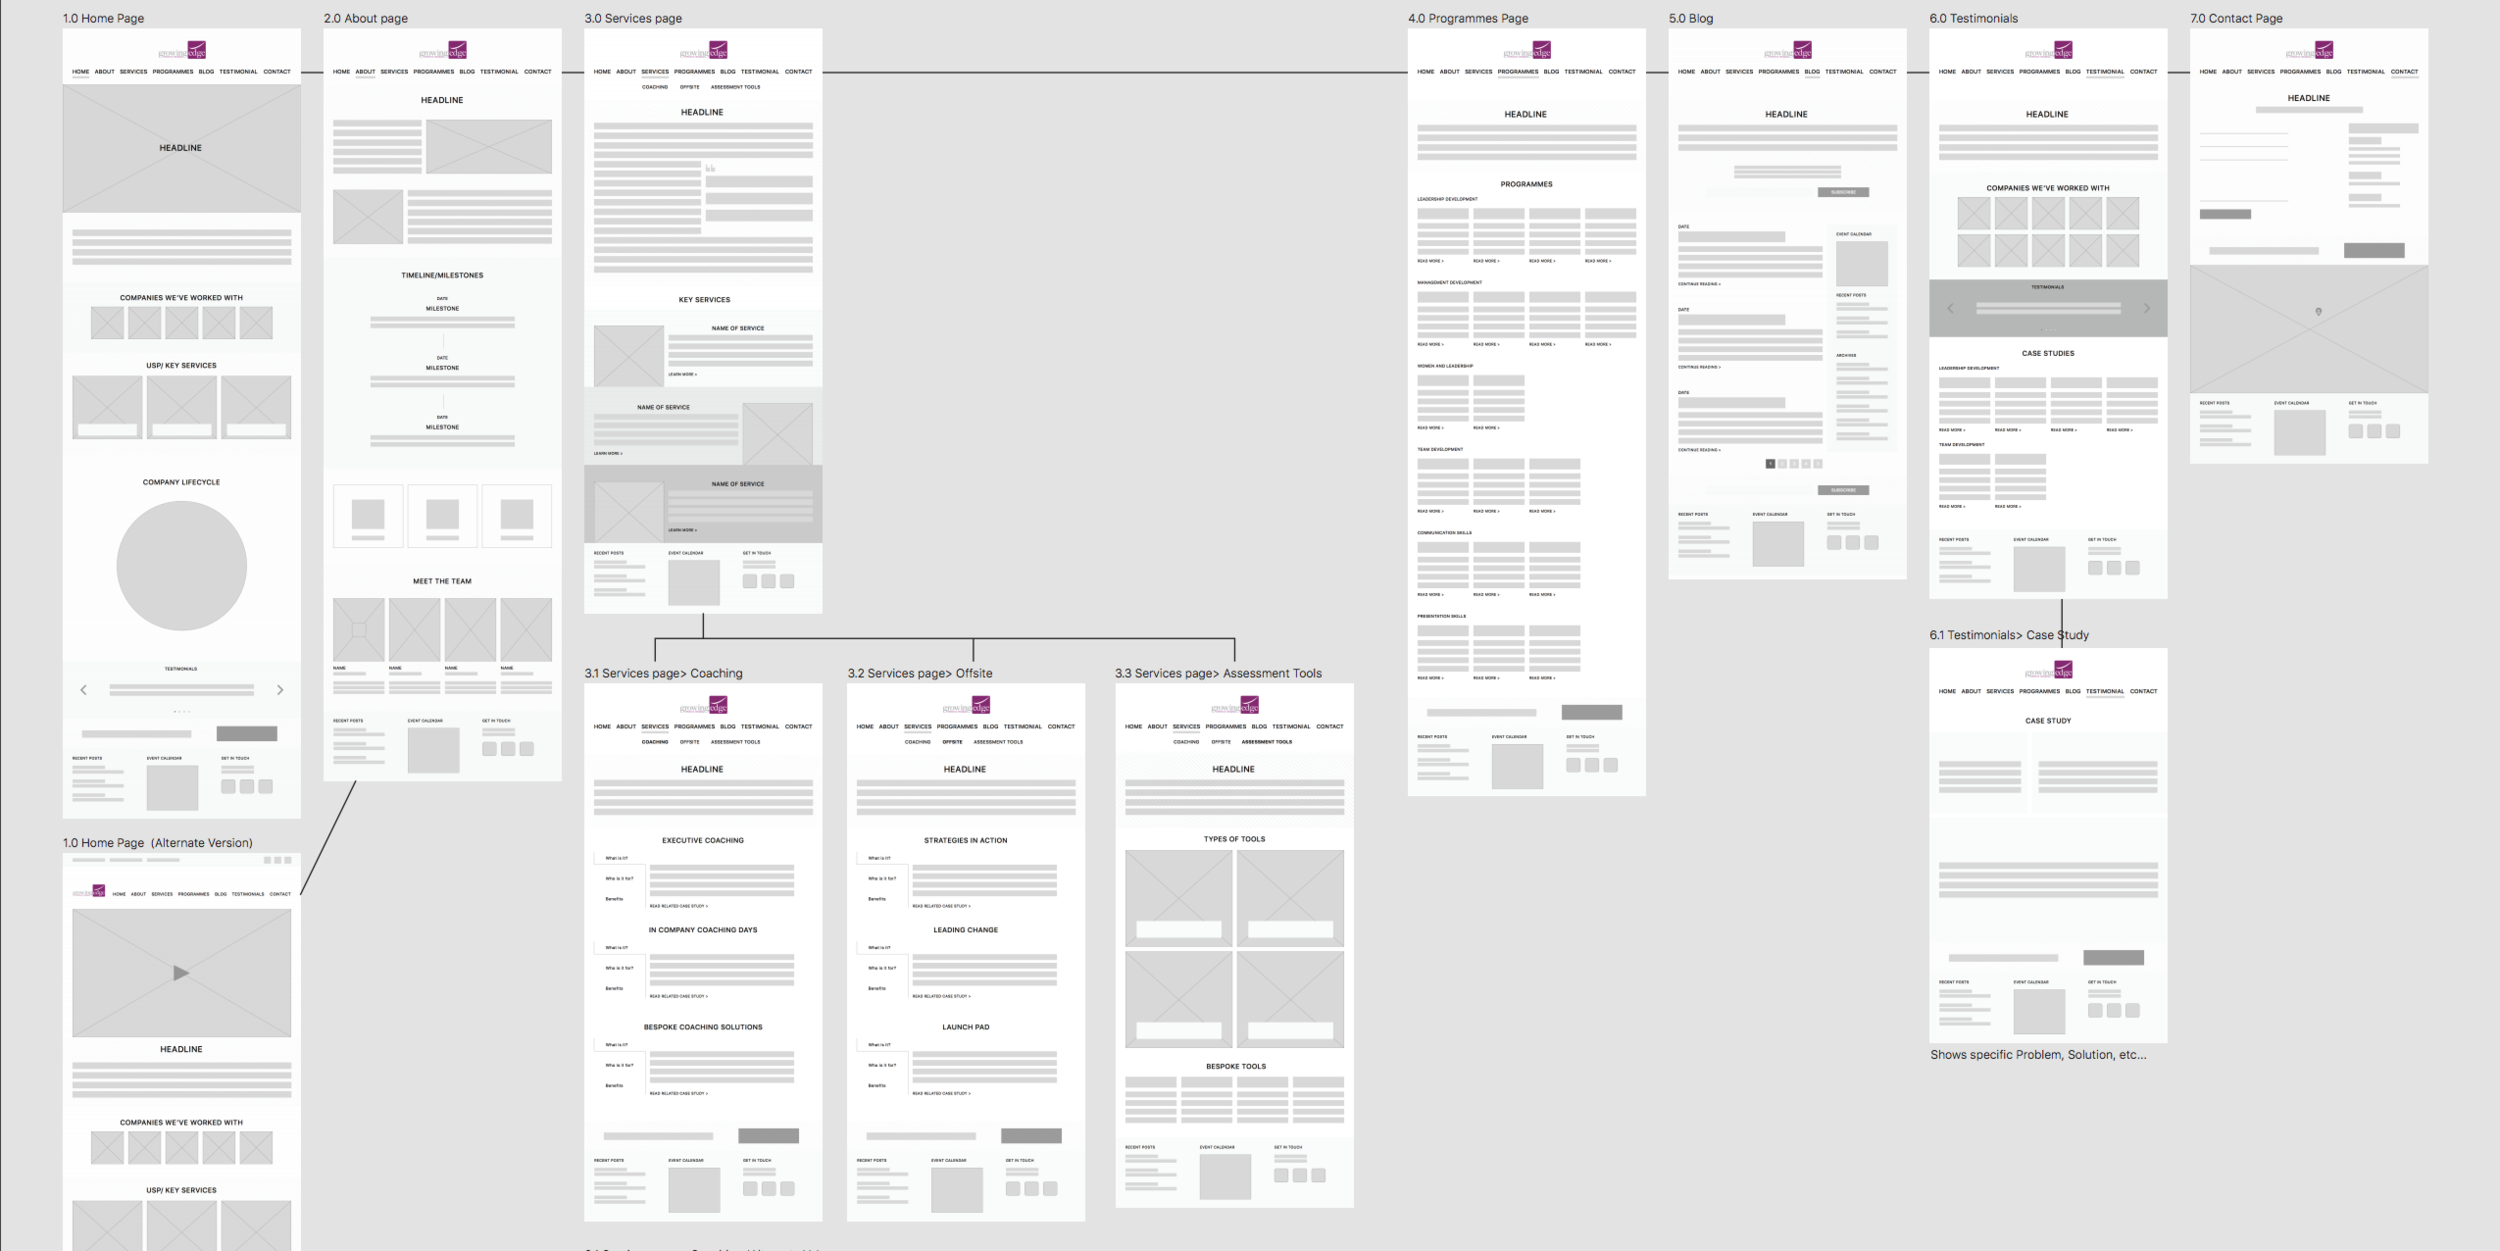 Website Map & Wireframing - Working closely with the design team, we drew on the information gathered during the copywriting workshop to create a sitemap with a logical structure and hierarchy.After fully understanding and empathising with the needs of our audience, we wireframed each page of the site to ensure a logical structure and that copy and design worked hand in hand, ensure calls to action, buttons and images were logically placed for the best possible user experience.